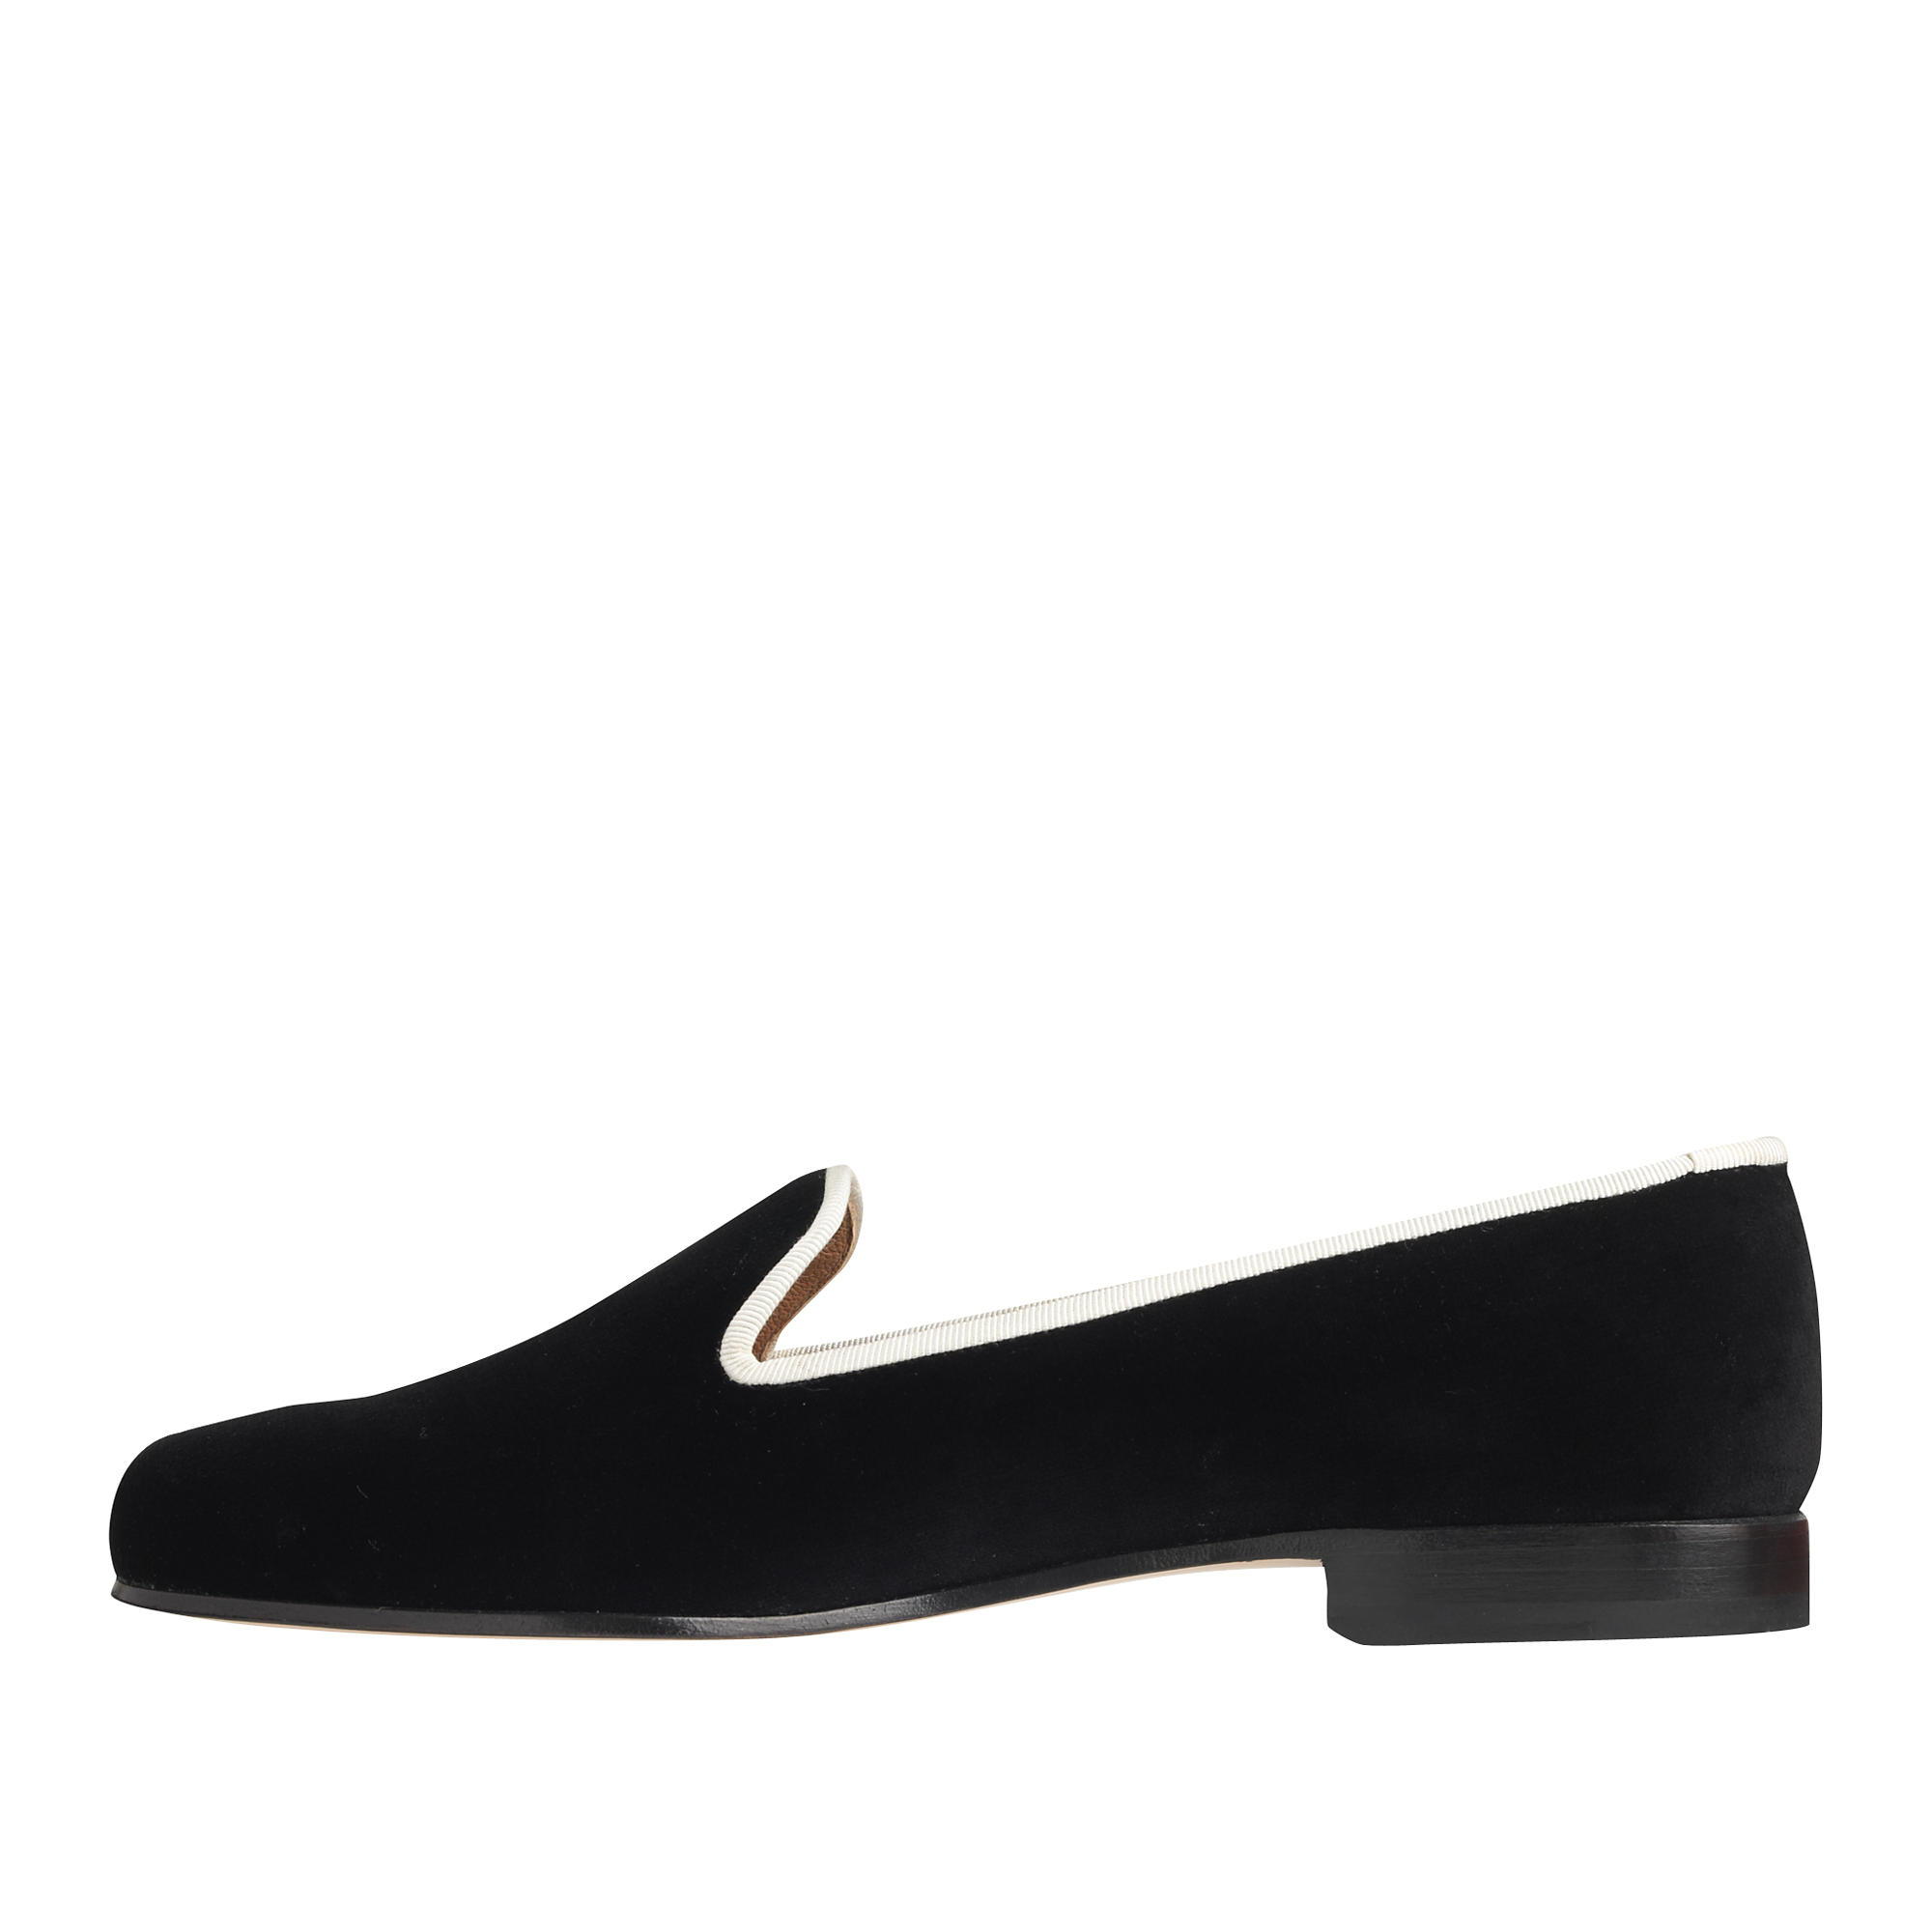 Stubbs wootton i do slippers in black lyst for J crew bedroom slippers